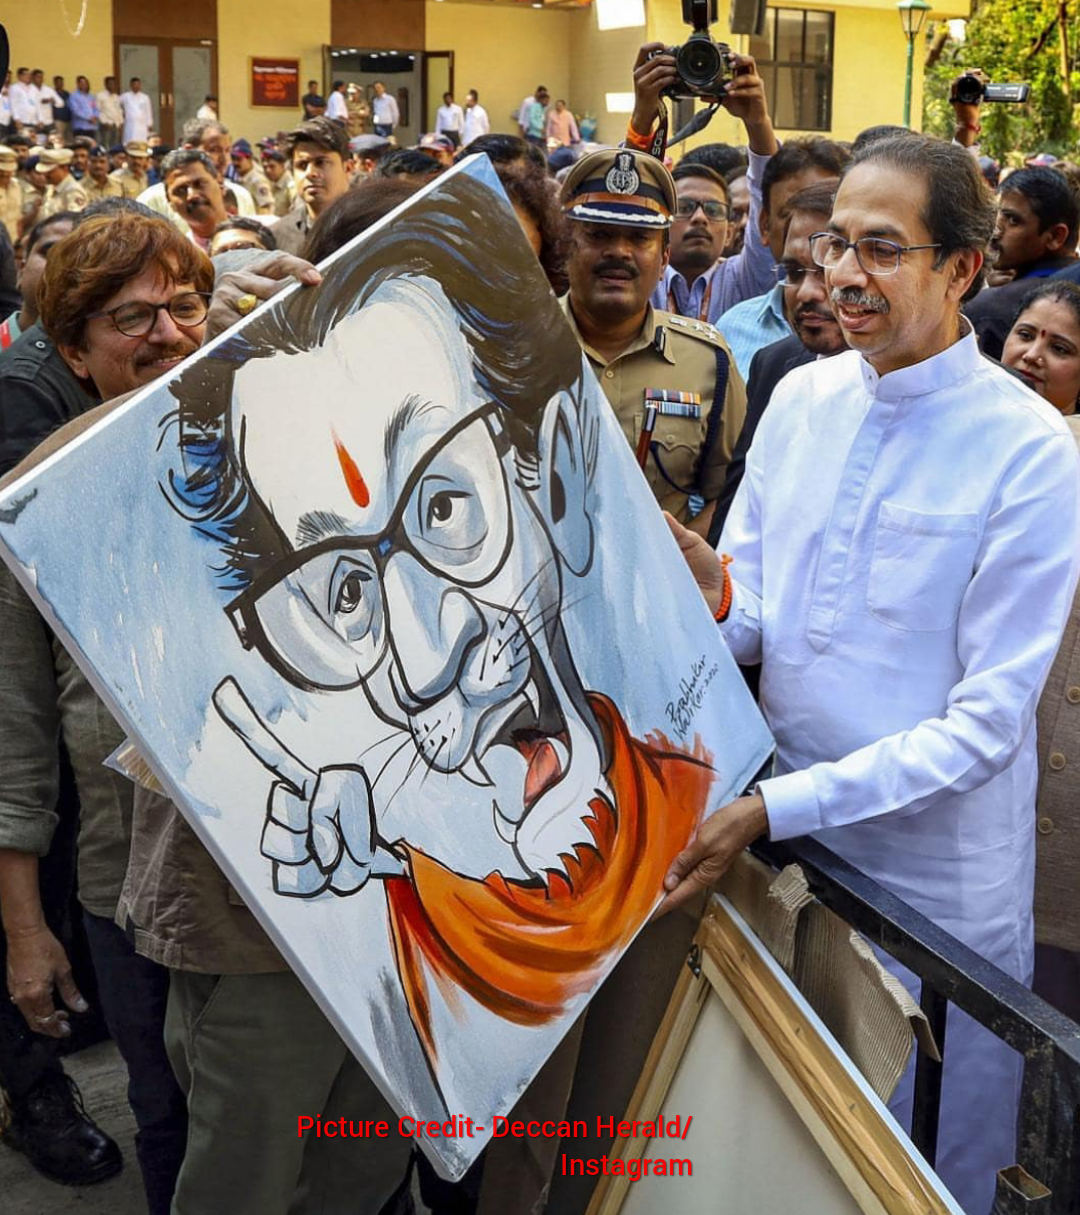 CM Uddhav Thackeray inaugurates the Balasaheb Thackeray Art in Thane ...